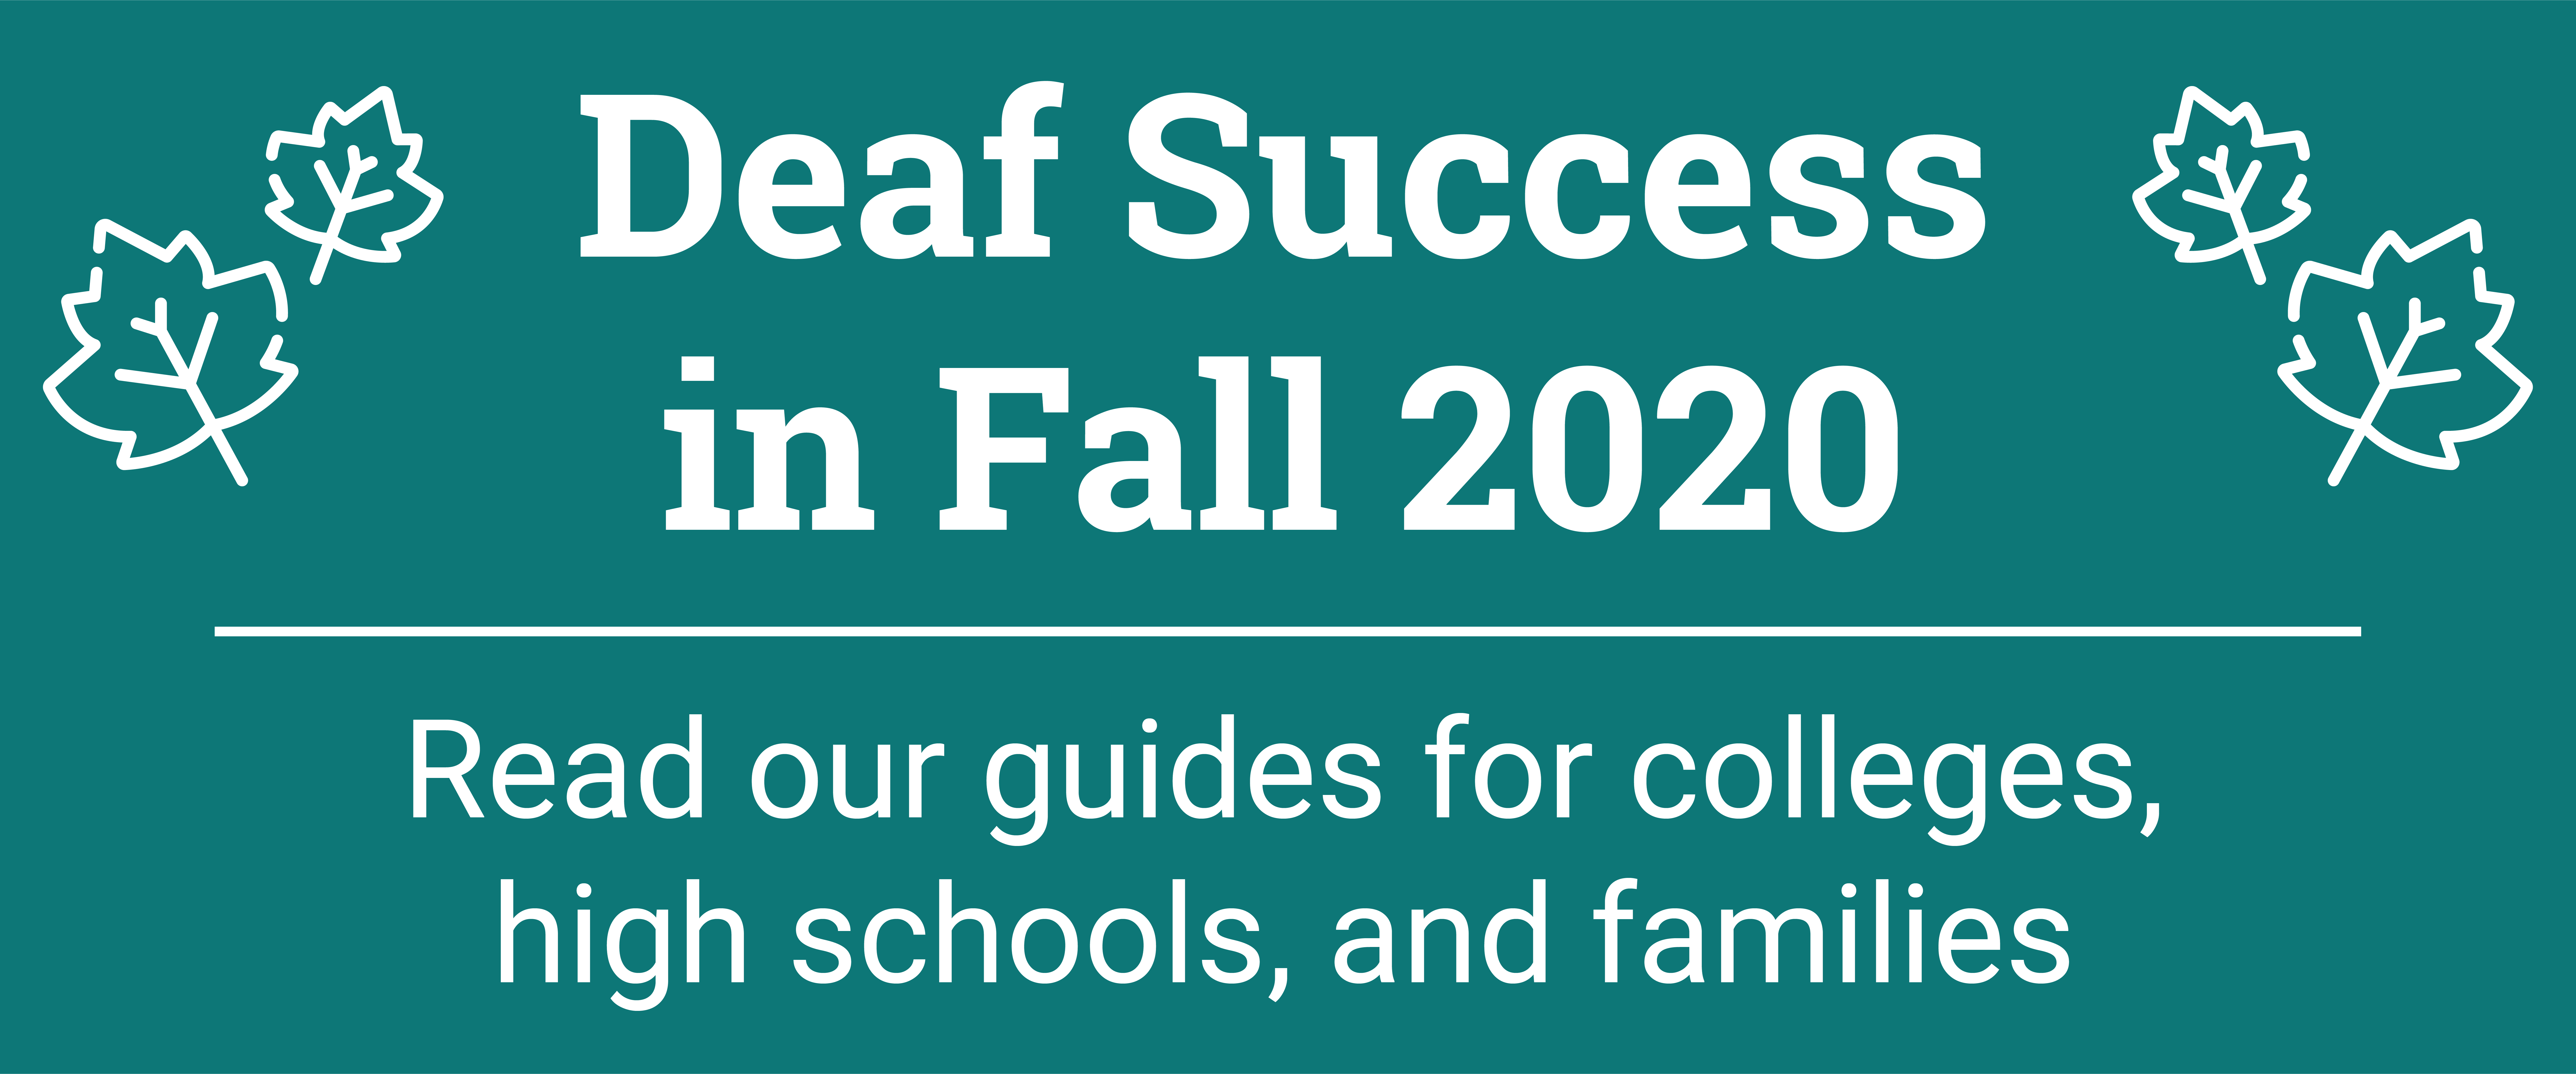 Text: Deaf Success in Fall 2020: Read our guides for colleges, high schools and families on teal background with leaf icons in white